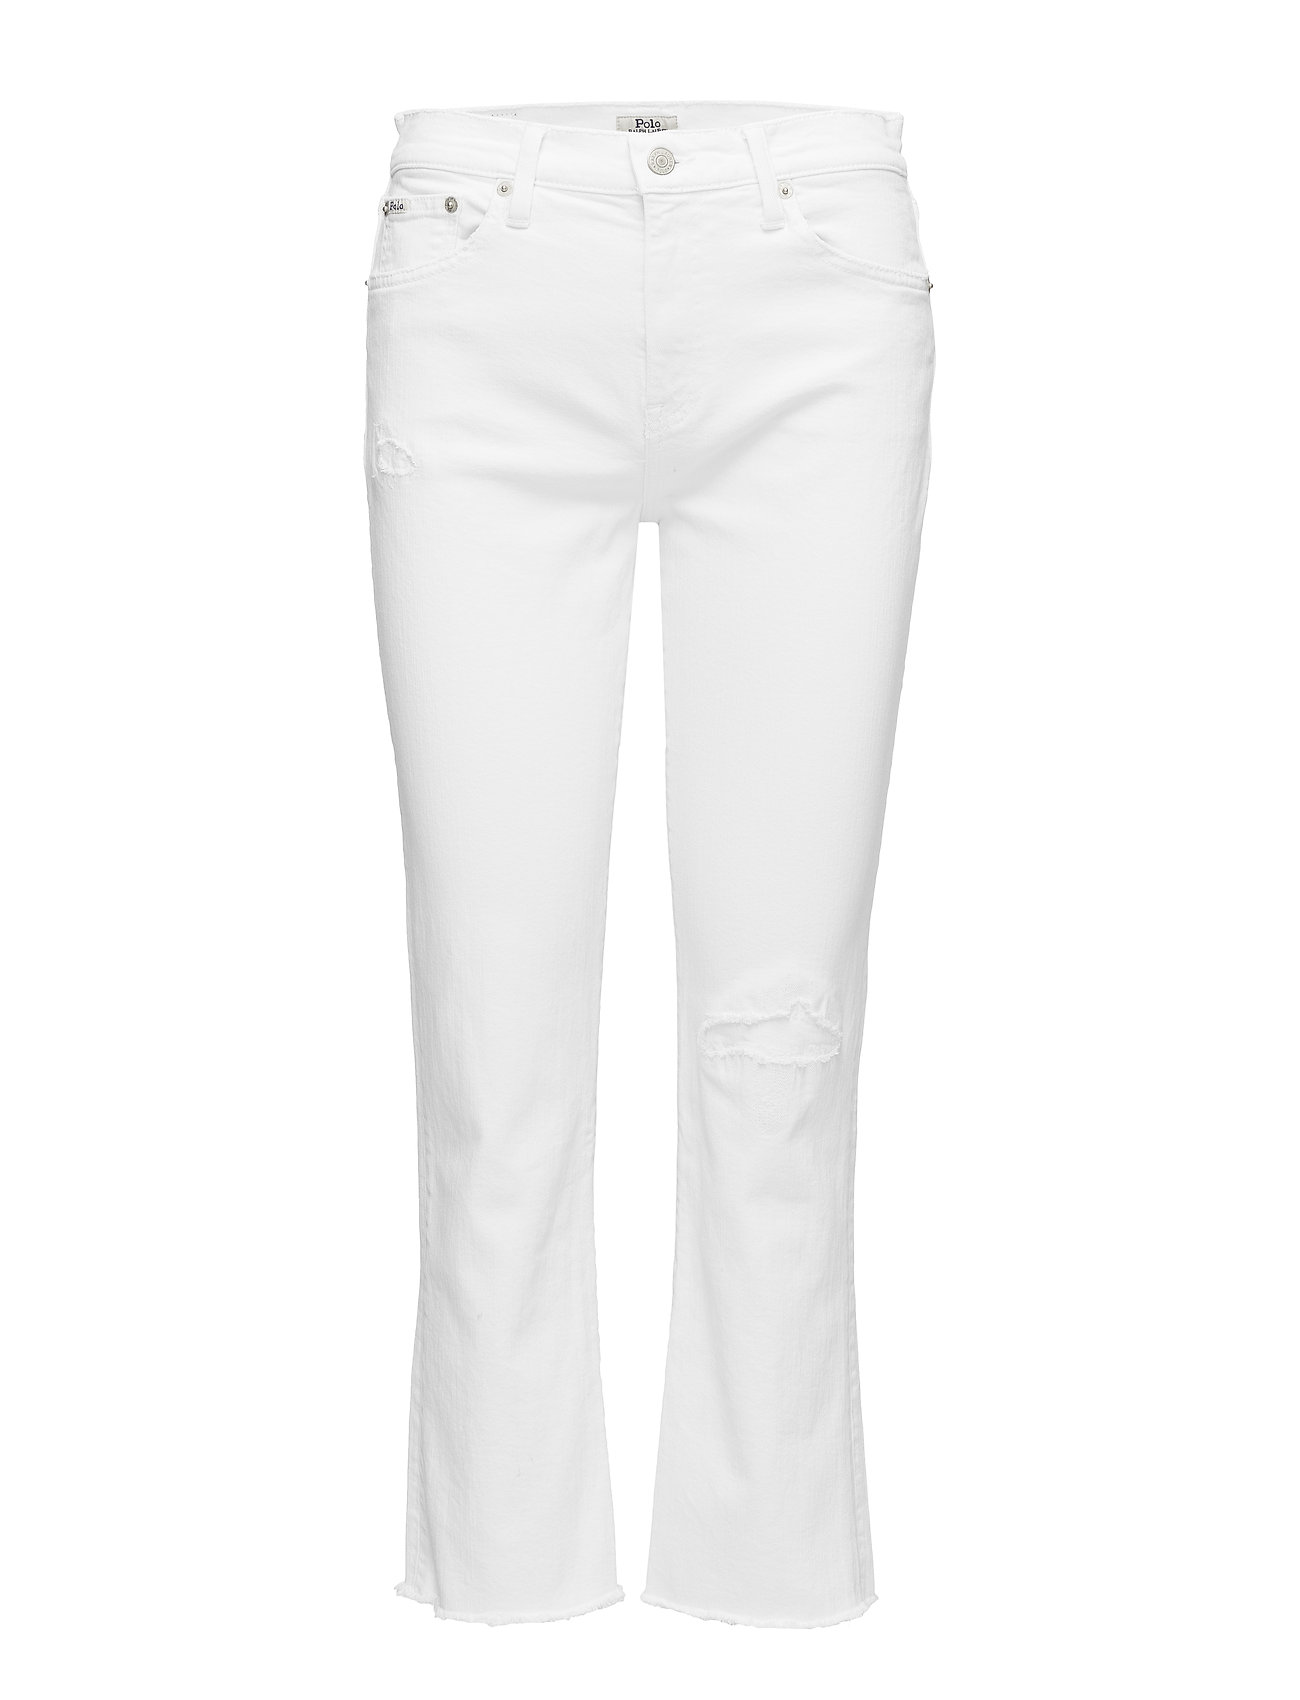 Polo Ralph Lauren Chrystie Kick-Flare Crop Jean - WHITE